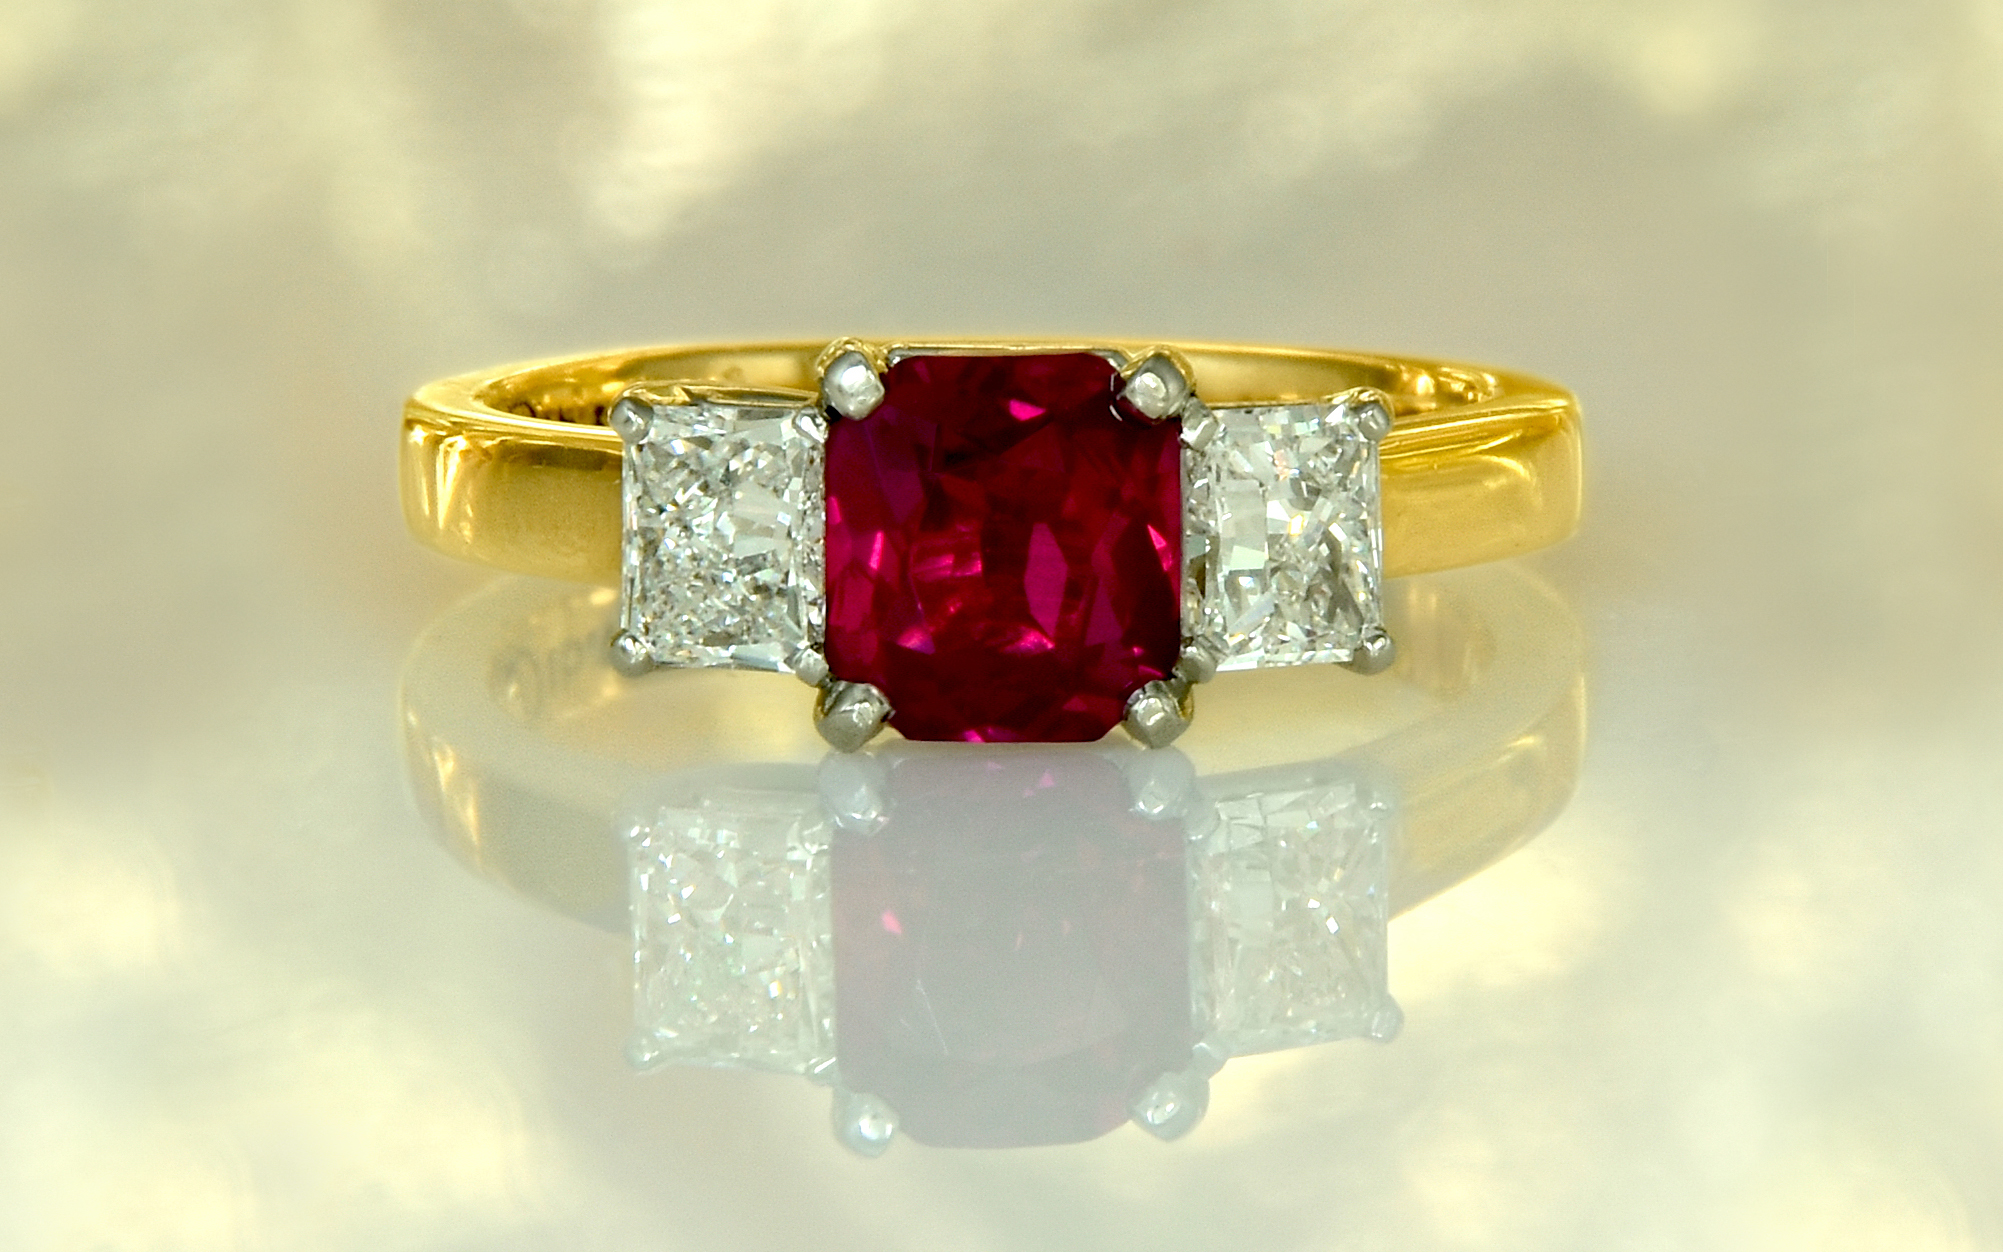 18 karat and Platinum Radiant Cut Ruby and Diamond Ring